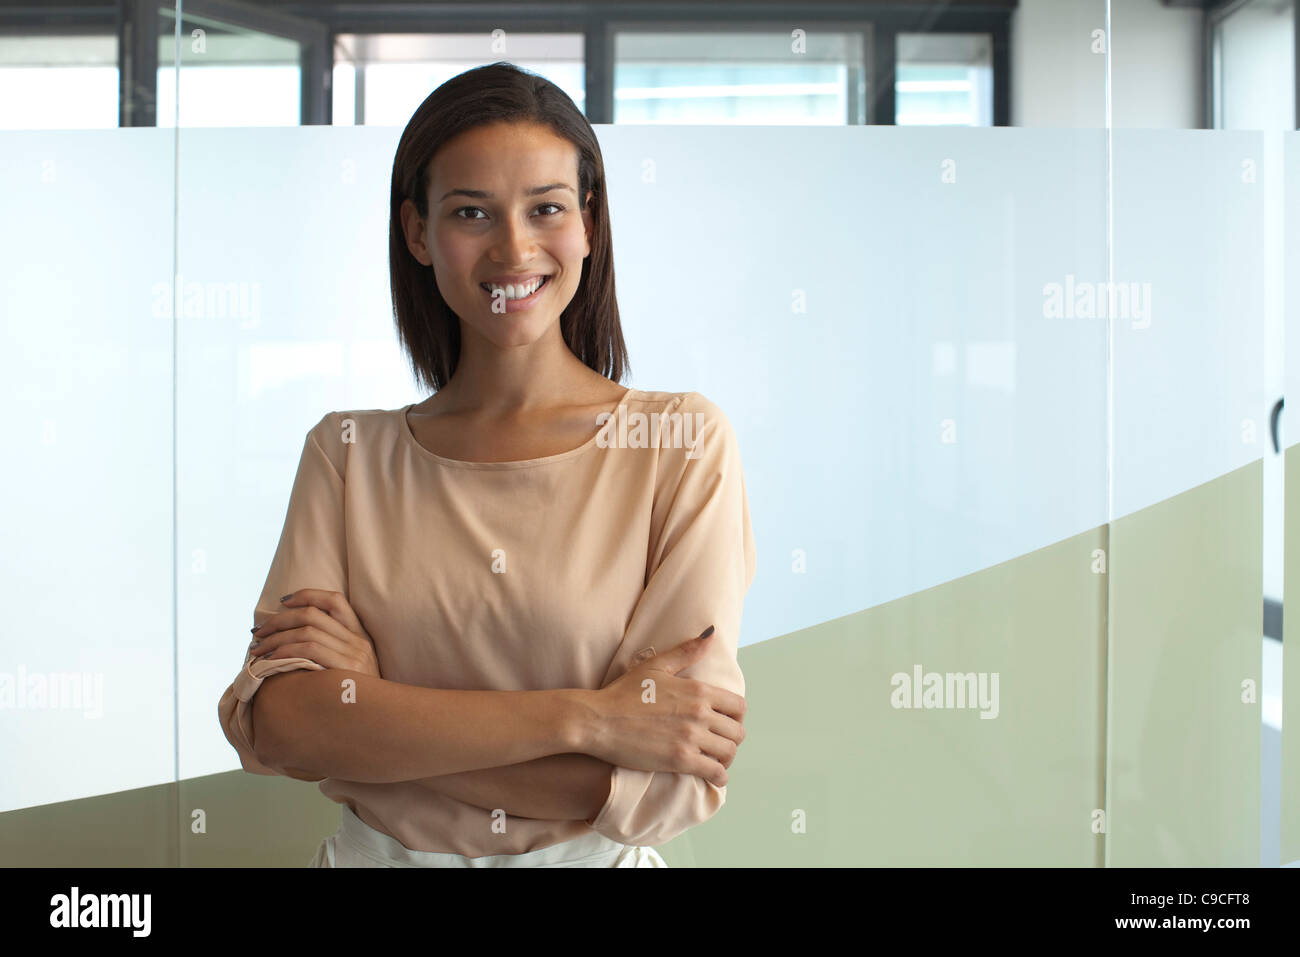 Smiling woman in office, portrait - Stock Image